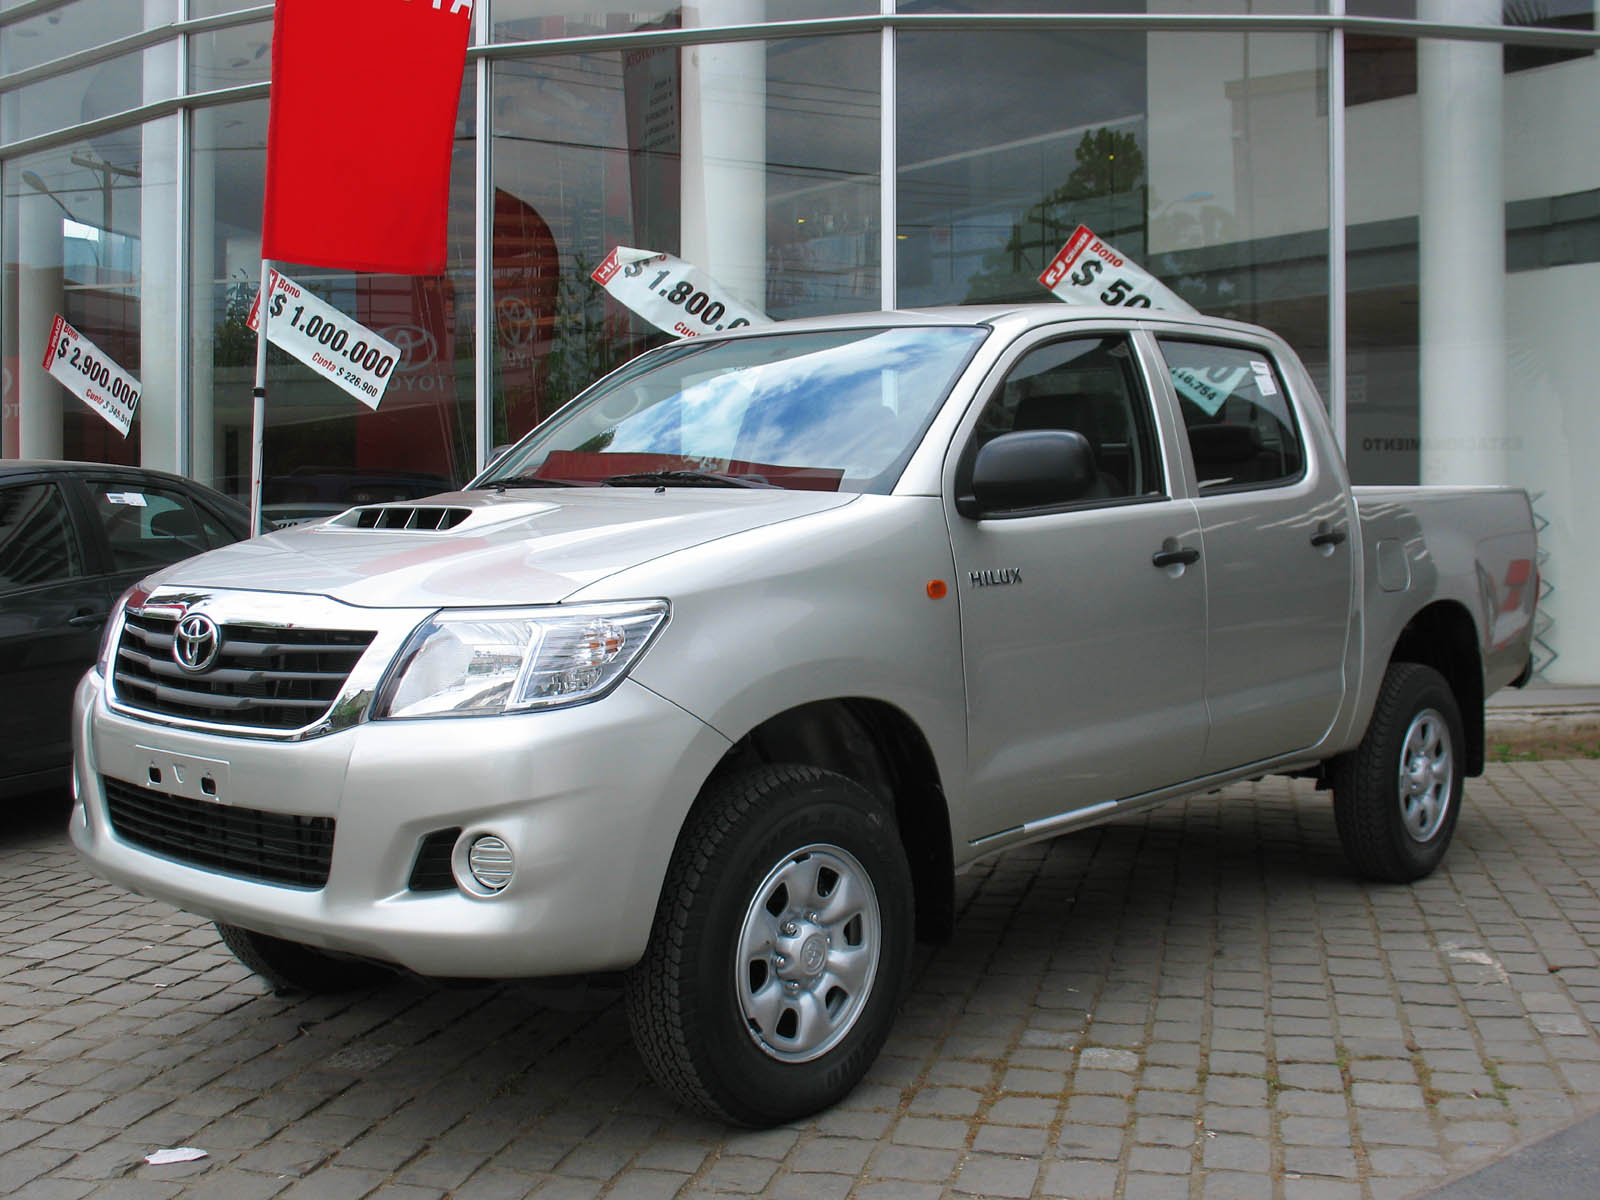 Toyota Hilux 2004 photo - 5